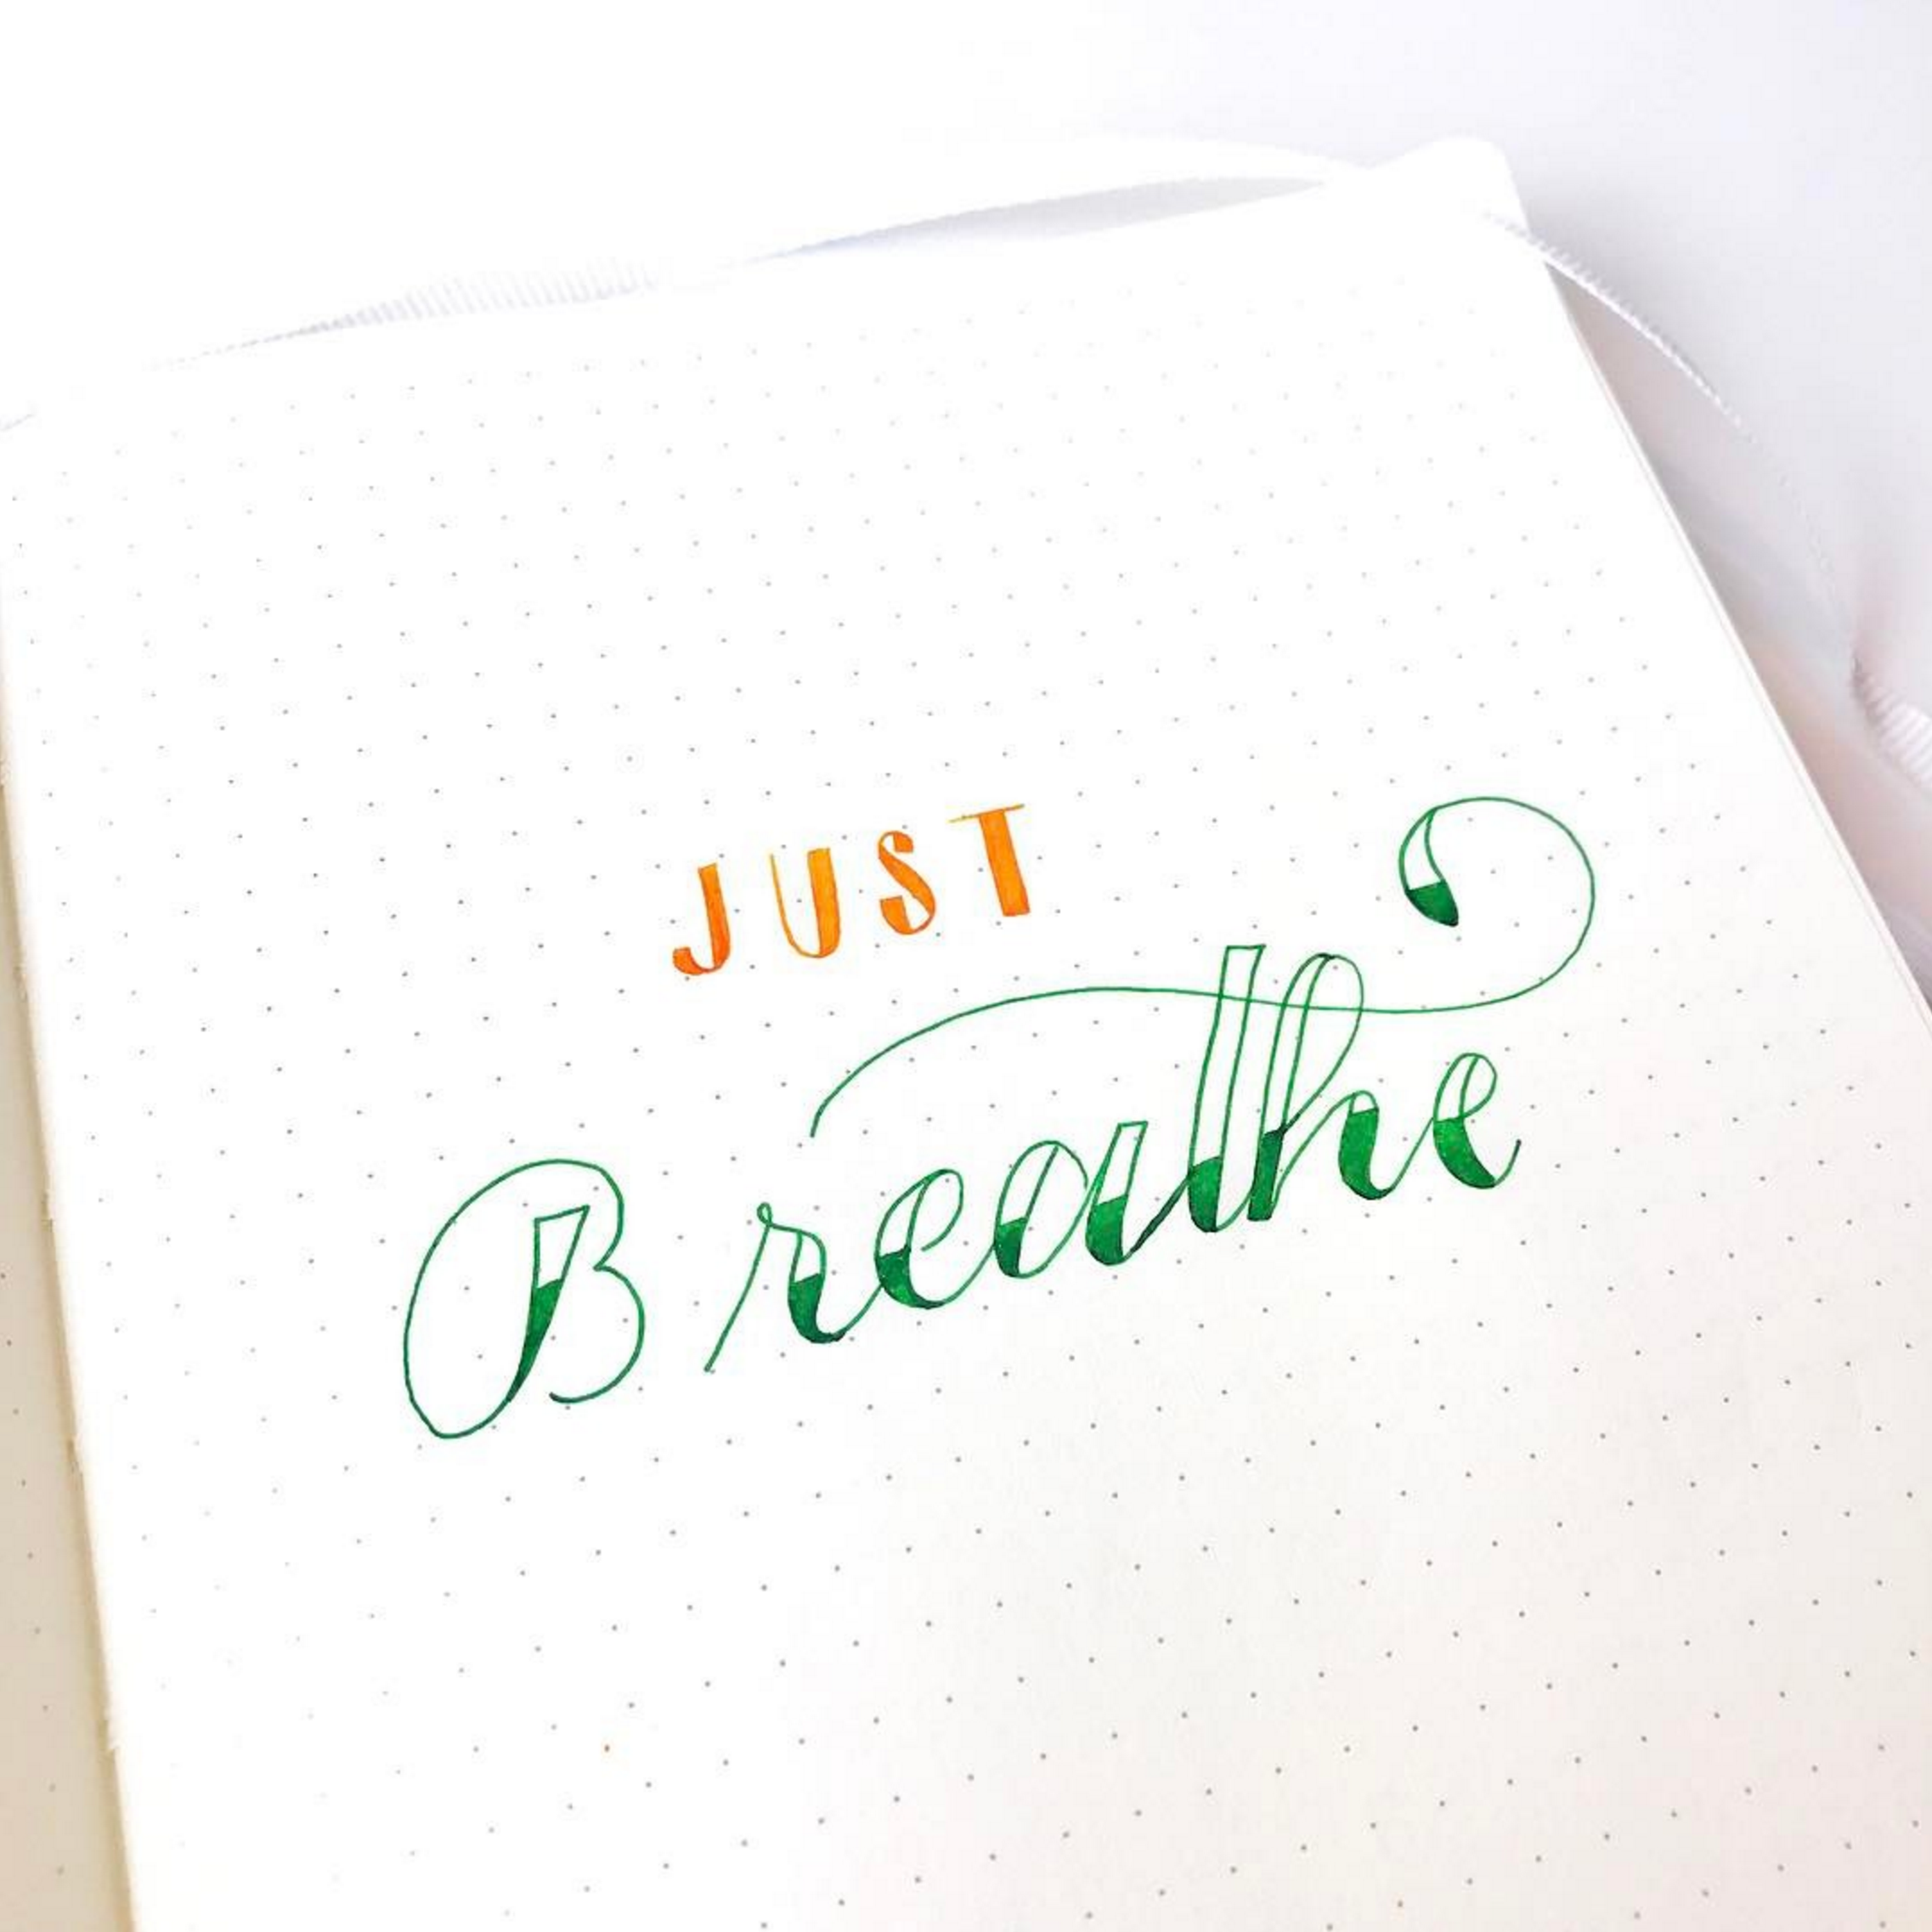 A Momentary Pause Page in your Bullet Journal can help you remember to take a moment to breathe when the going gets rough.